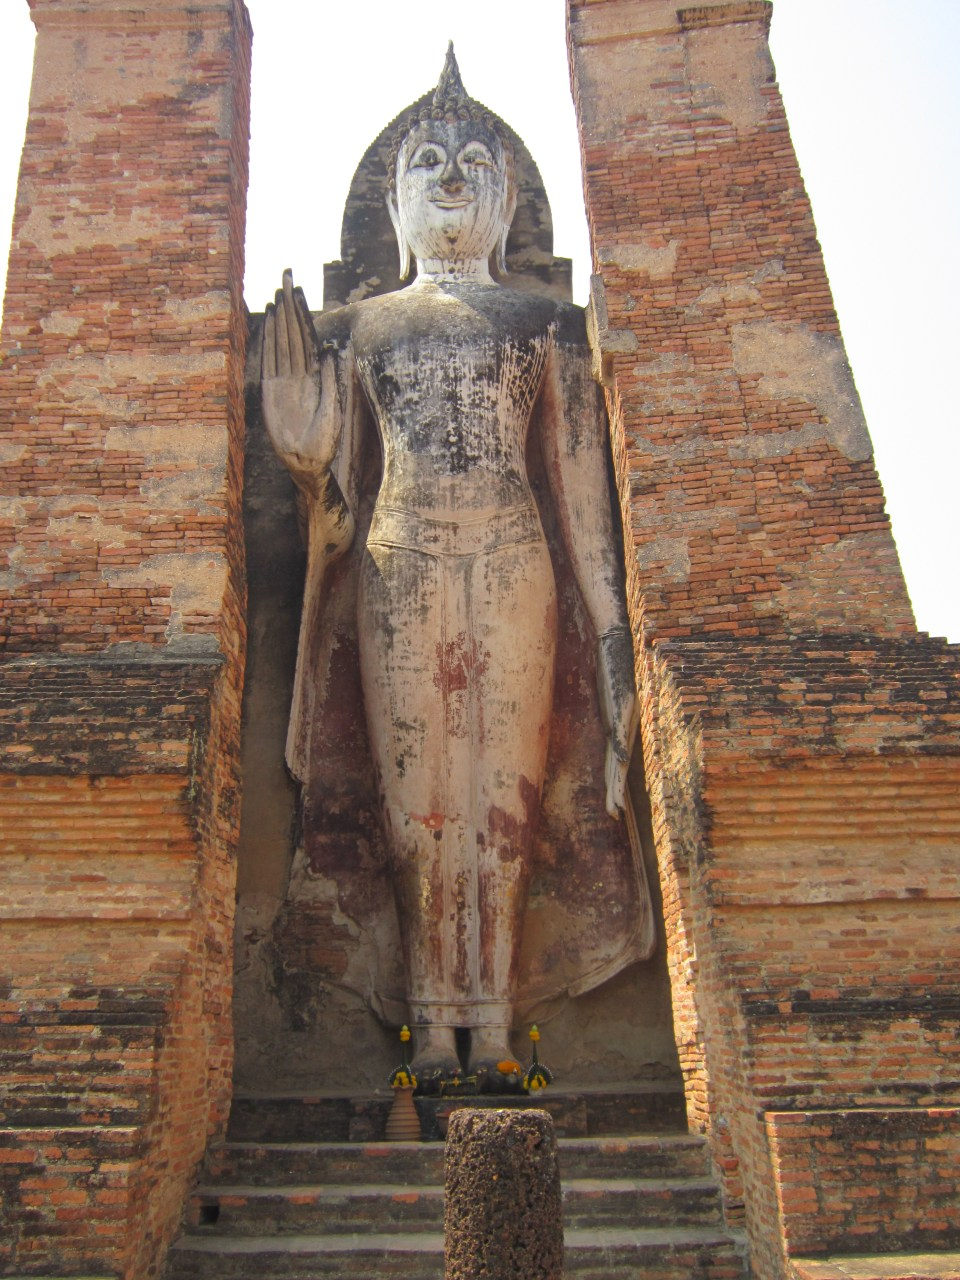 Tall statue in Sukhothai Historical Park